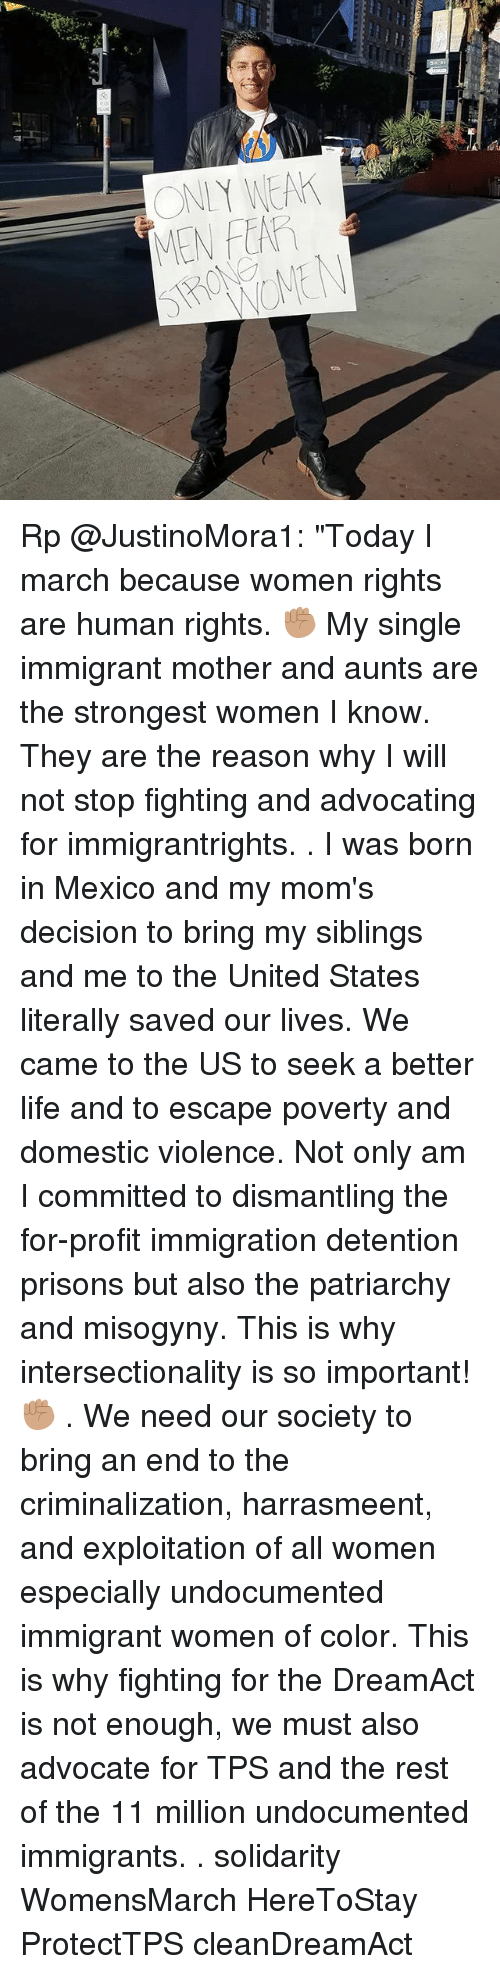 "Life, Memes, and Moms: ONIY WEA  MEN FEAR Rp @JustinoMora1: ""Today I march because women rights are human rights. ✊🏽 My single immigrant mother and aunts are the strongest women I know. They are the reason why I will not stop fighting and advocating for immigrantrights. . I was born in Mexico and my mom's decision to bring my siblings and me to the United States literally saved our lives. We came to the US to seek a better life and to escape poverty and domestic violence. Not only am I committed to dismantling the for-profit immigration detention prisons but also the patriarchy and misogyny. This is why intersectionality is so important! ✊🏽 . We need our society to bring an end to the criminalization, harrasmeent, and exploitation of all women especially undocumented immigrant women of color. This is why fighting for the DreamAct is not enough, we must also advocate for TPS and the rest of the 11 million undocumented immigrants. . solidarity WomensMarch HereToStay ProtectTPS cleanDreamAct"